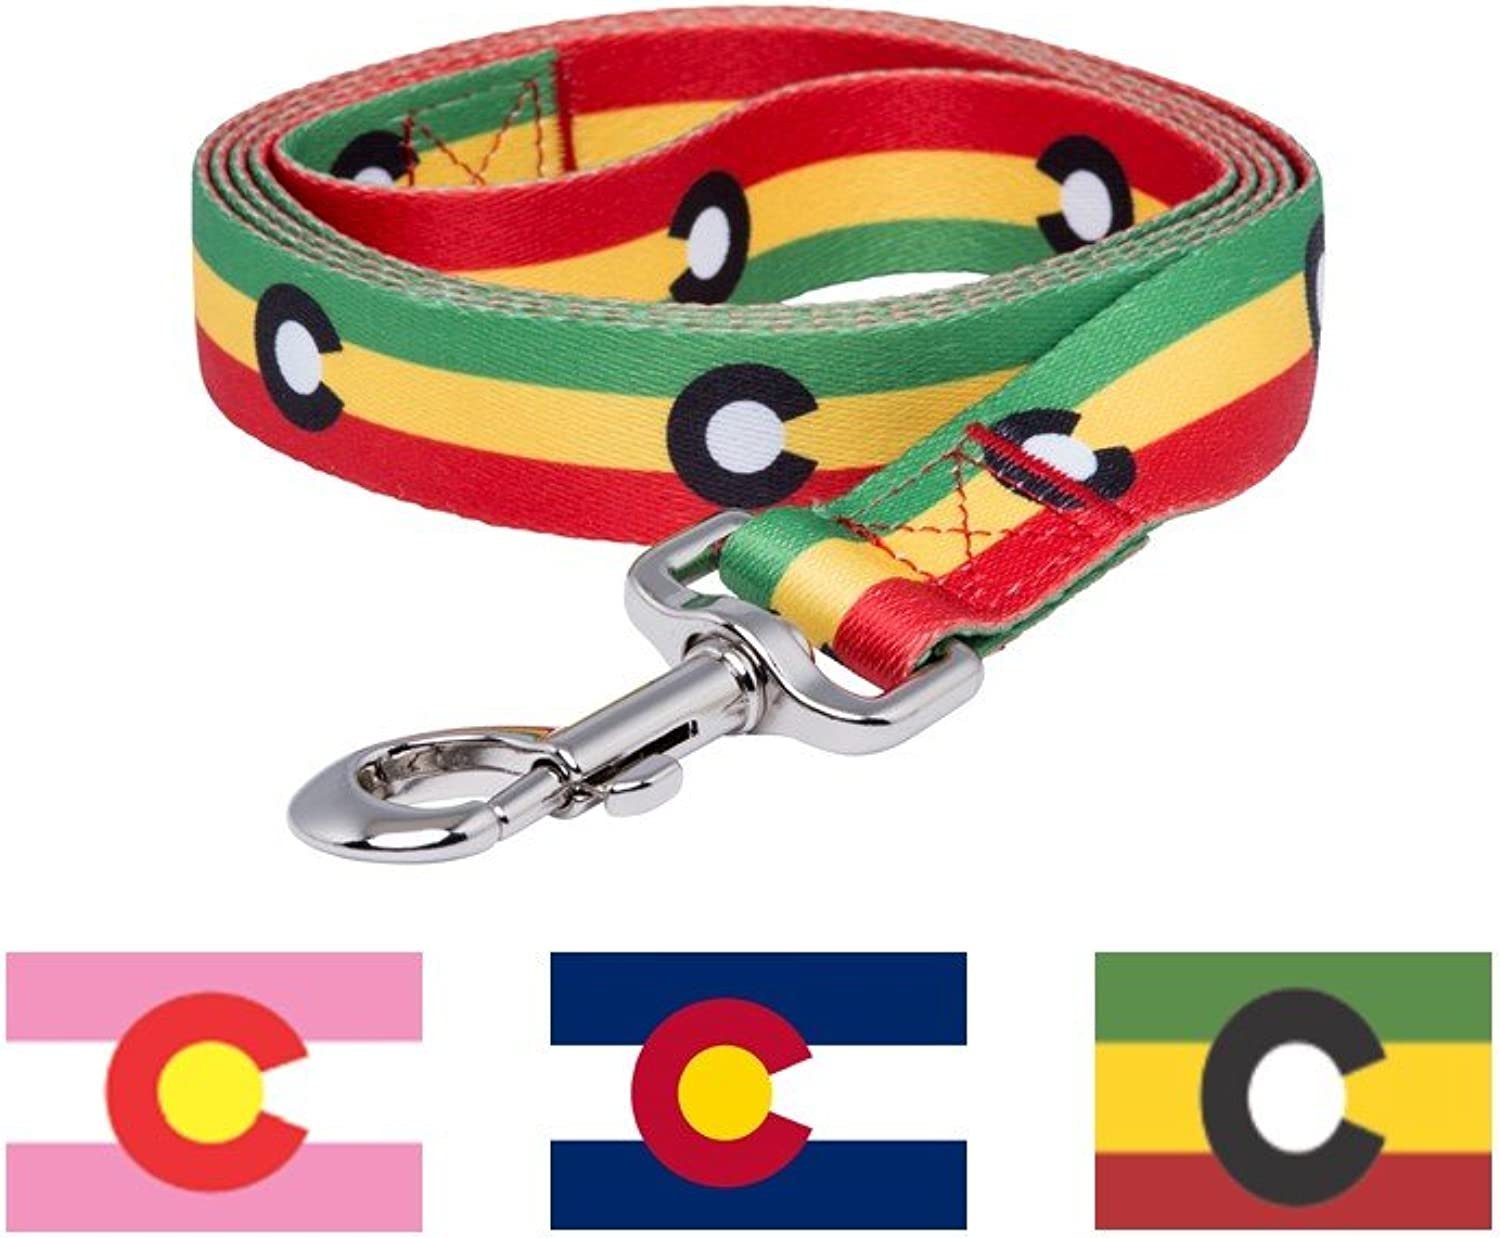 Native Pup colorado Flag Dog Leash (Rasta)